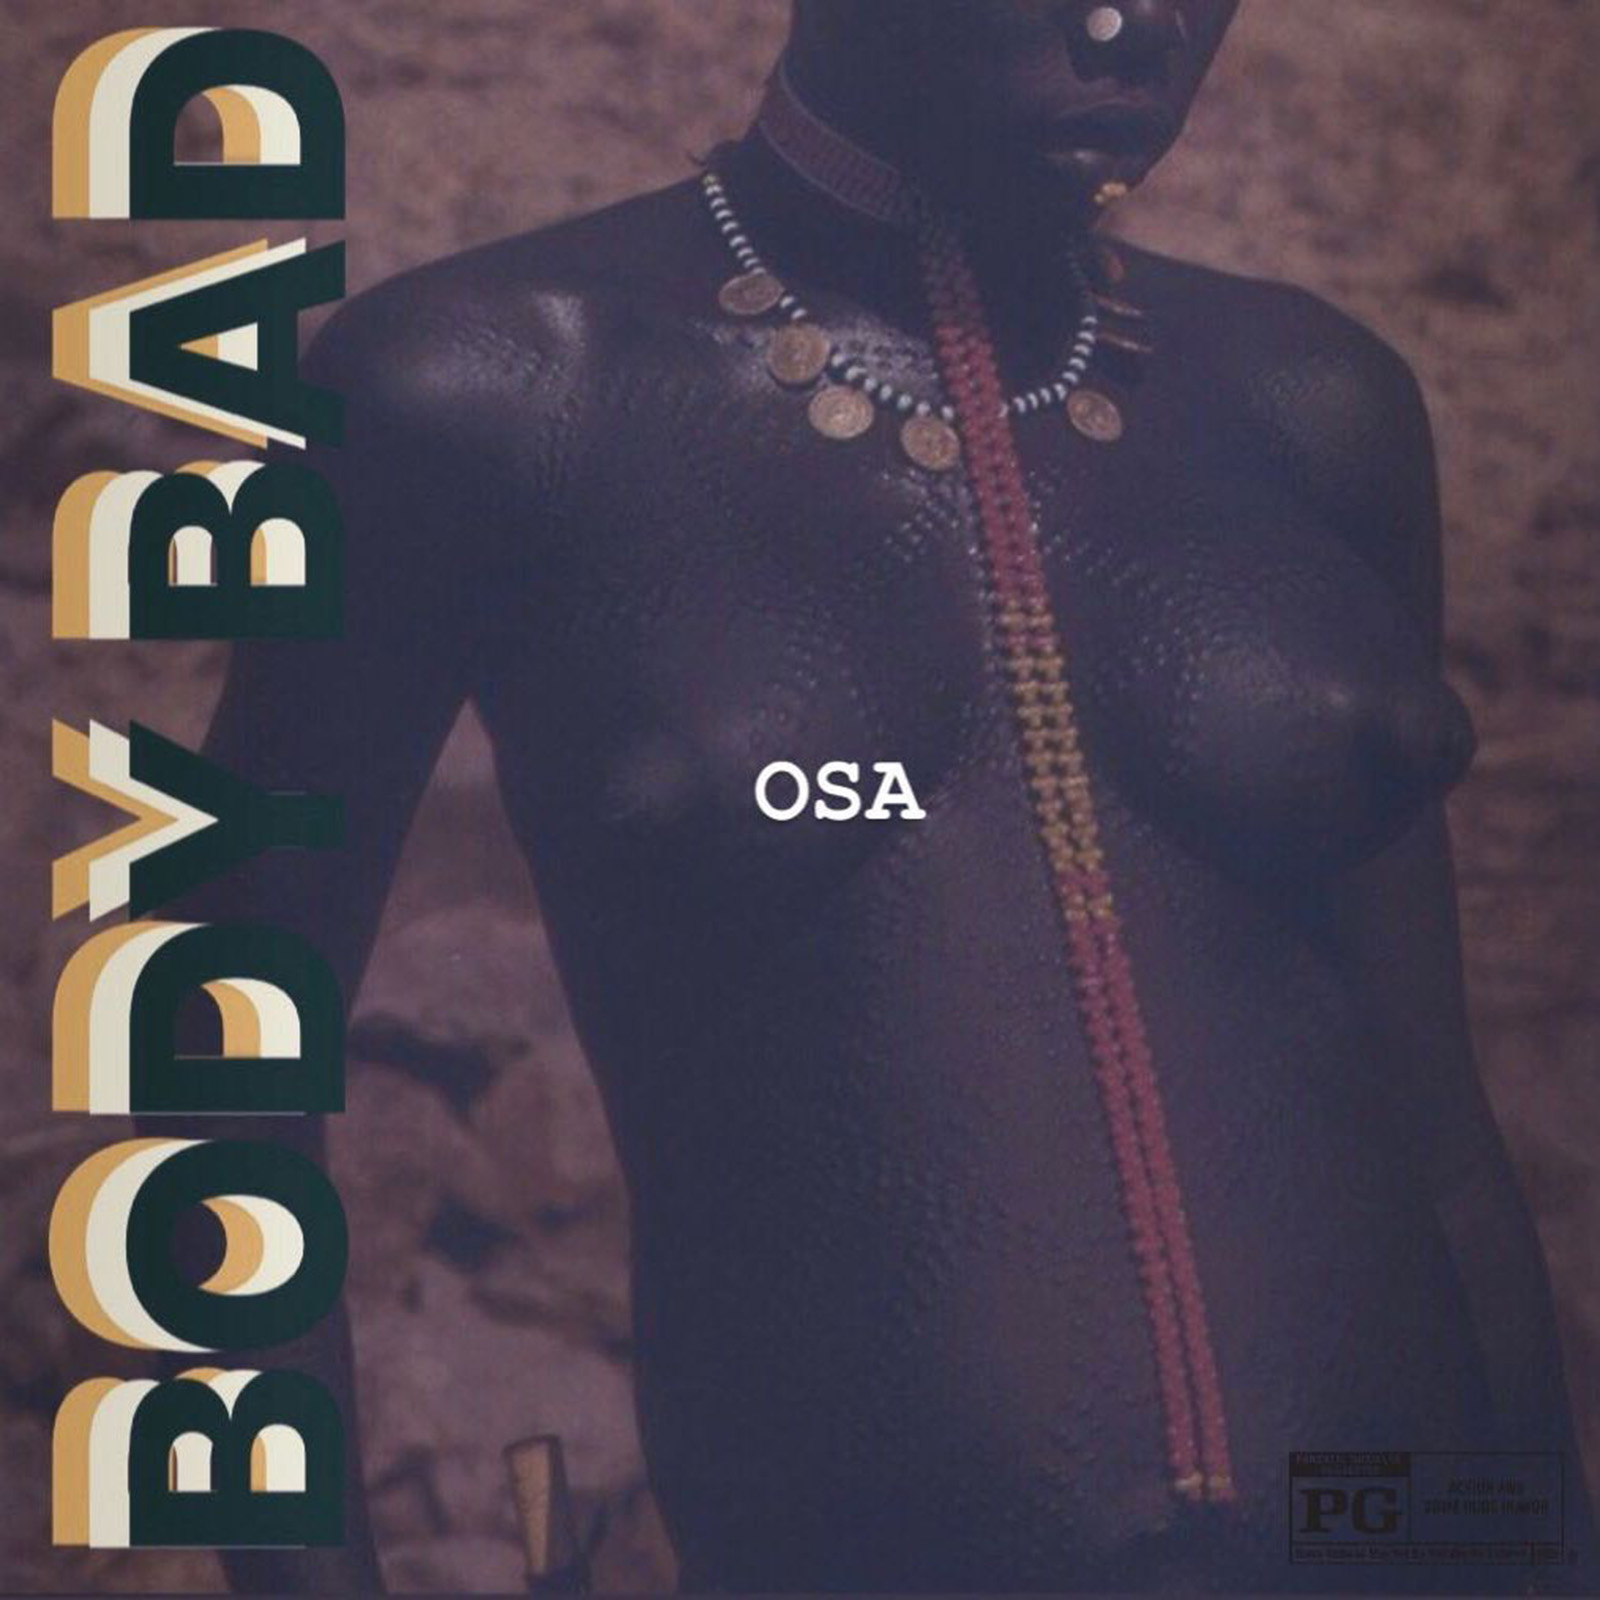 Body Bad by Osa